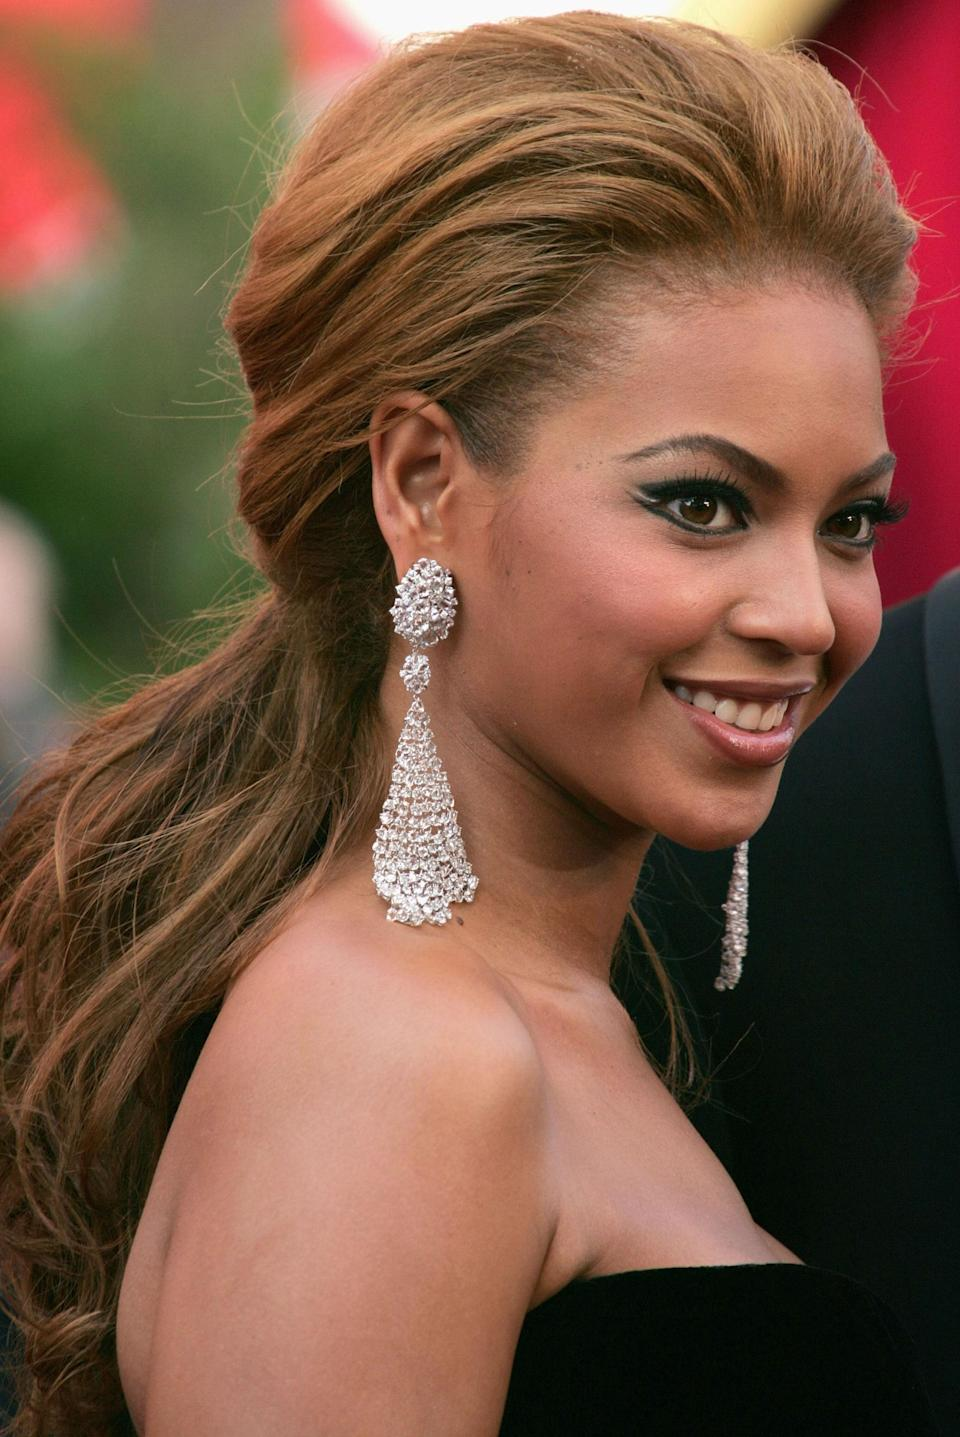 The ongoing collaboration between Beyoncé and Lorraine Schwartz has resulted in several memorable red carpet moments, but none more impactful than the 2005 debut of Schwartz's diamond mesh earrings. A unique concept that merged sparkle and movement into dynamic jewelry, variations on the look have since been worn by everyone from Chrissy Teigen to Rita Ora.